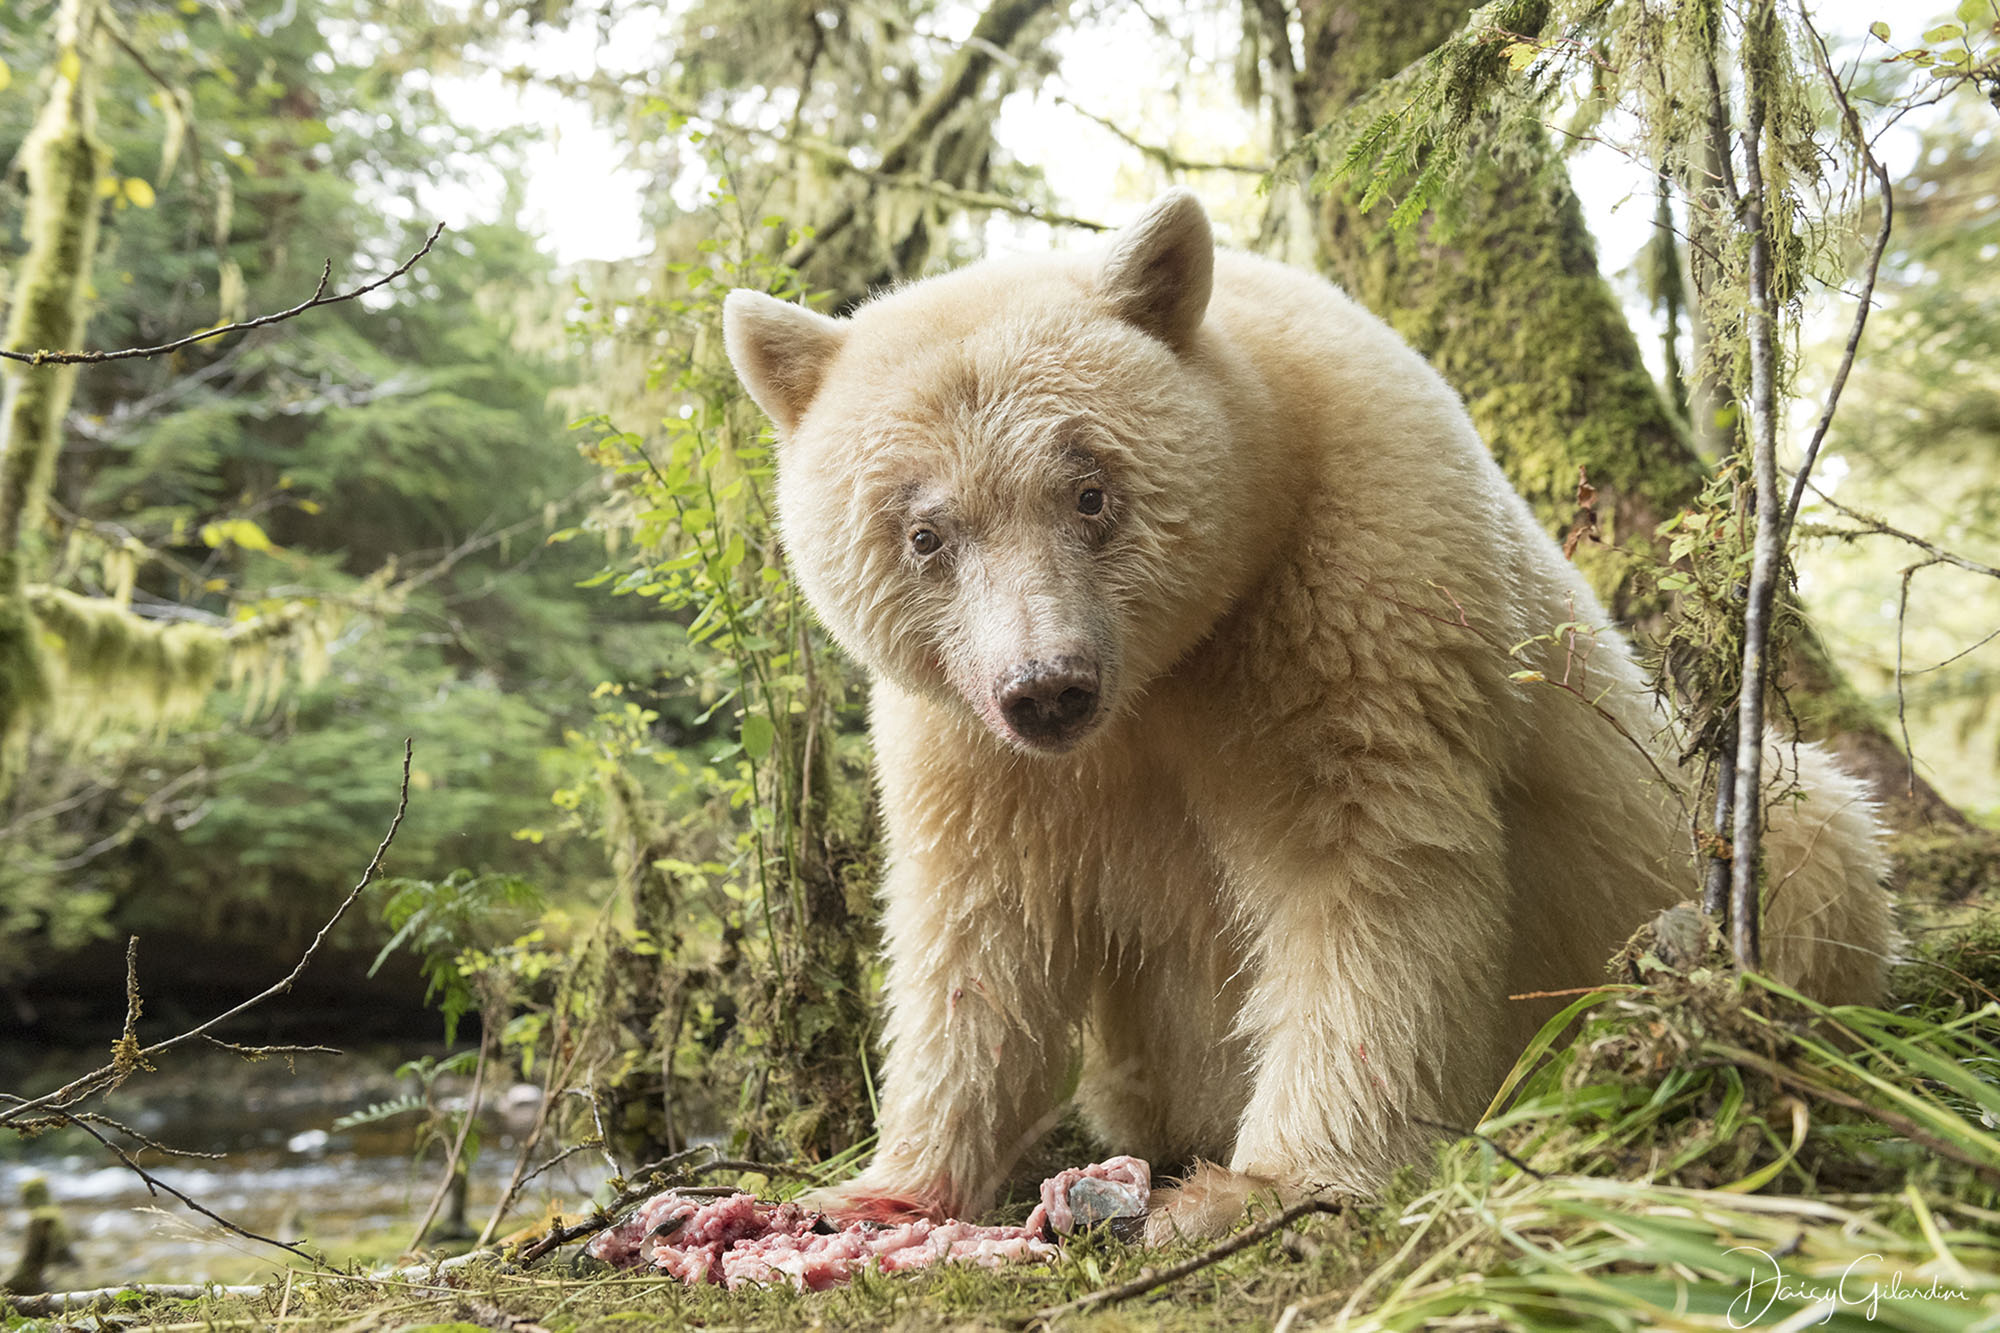 A-Kermode-bear-in-BCs-Great-Bear-Rainforest-Daisy-Gilardini-6.jpg